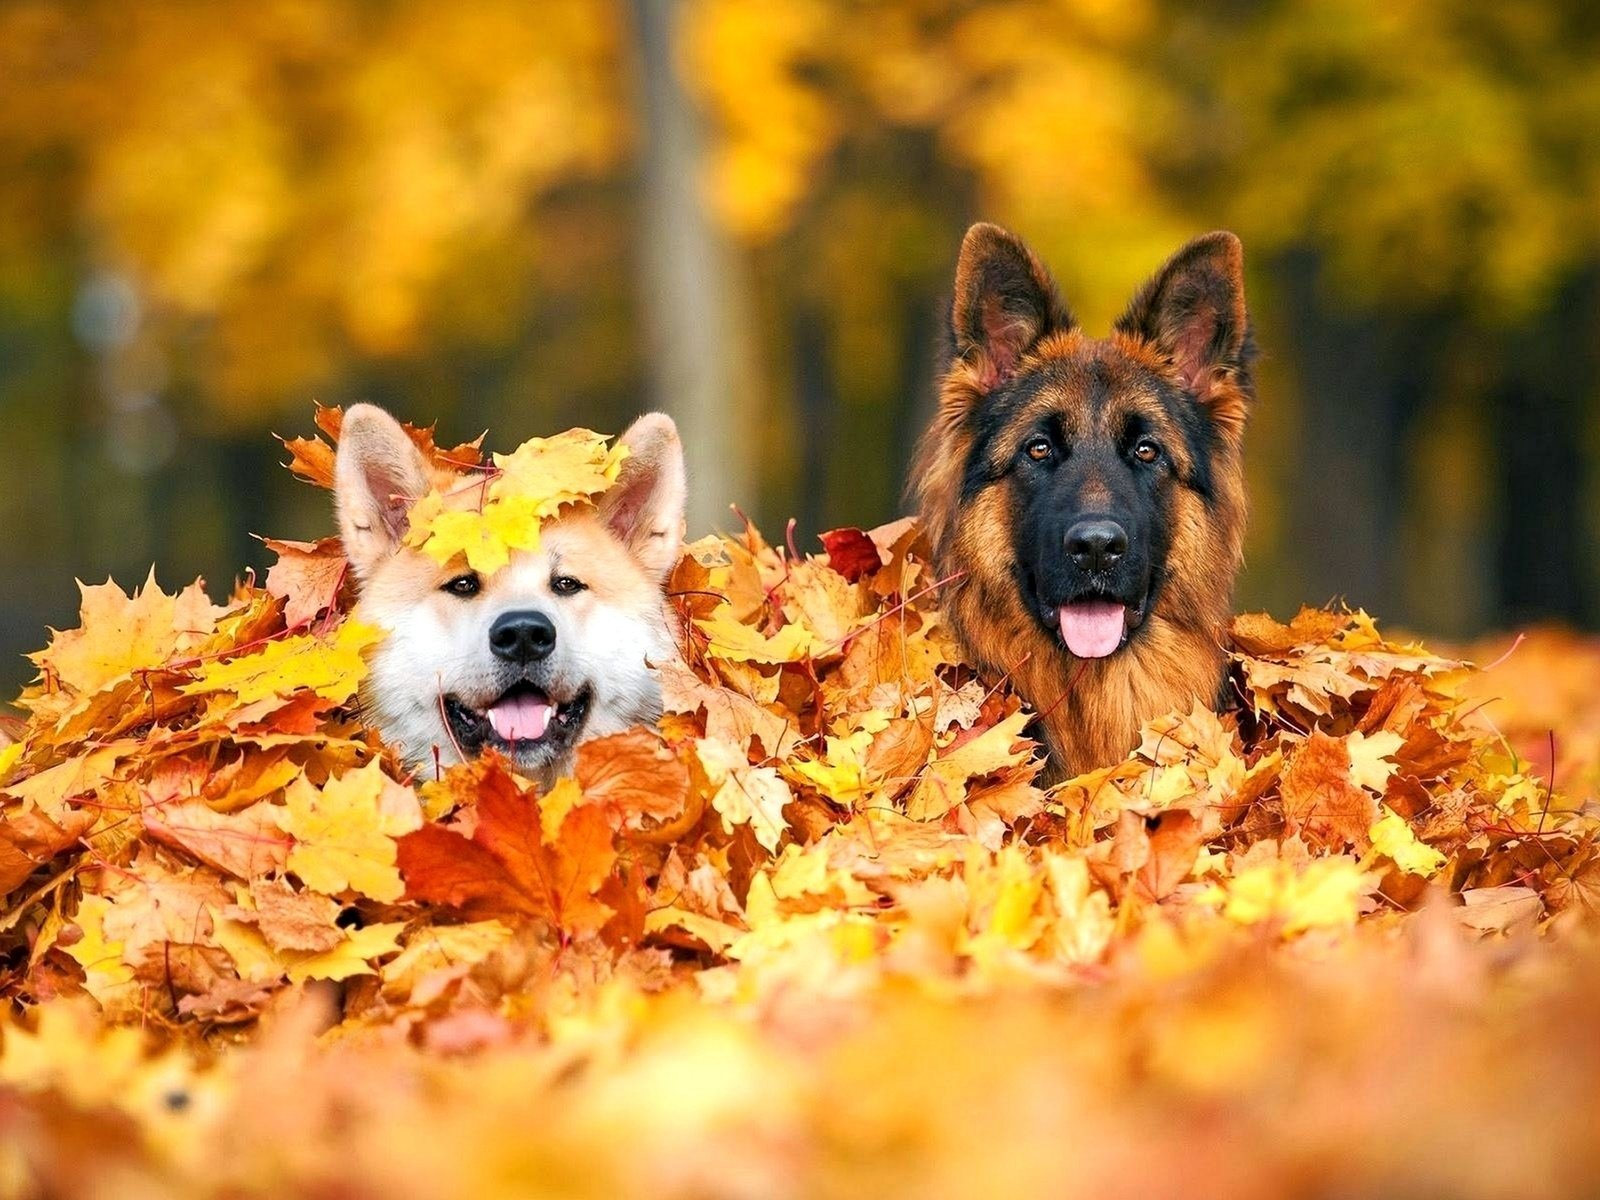 German Shepherd Dogs in Pile of Autumn Leaves